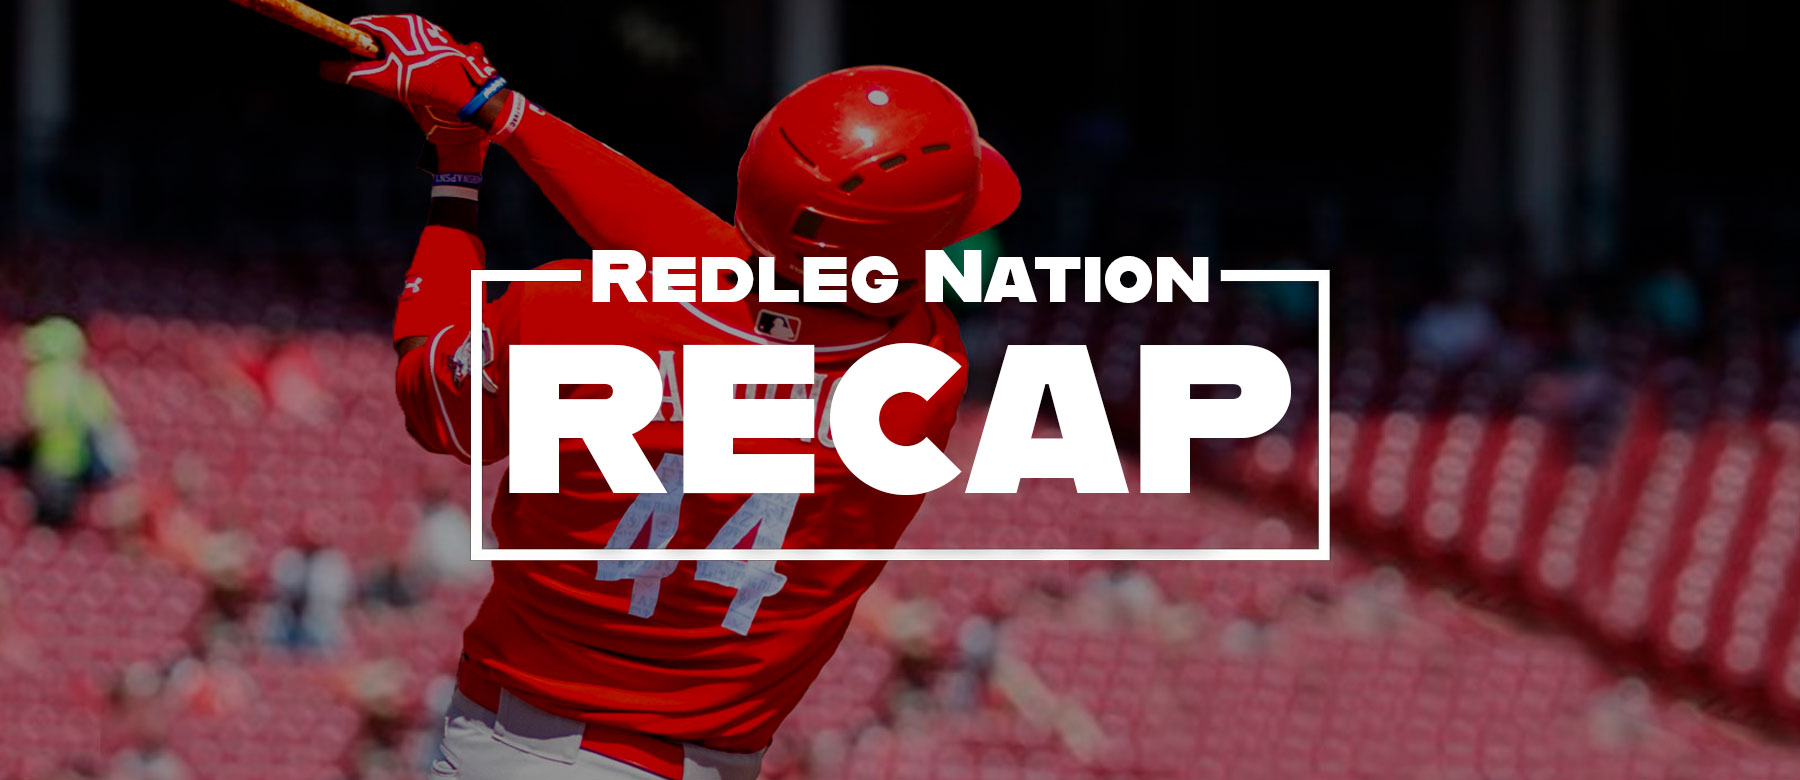 Aristides Aquino homers, Sonny Gray dominates in Reds win - Redleg Nation